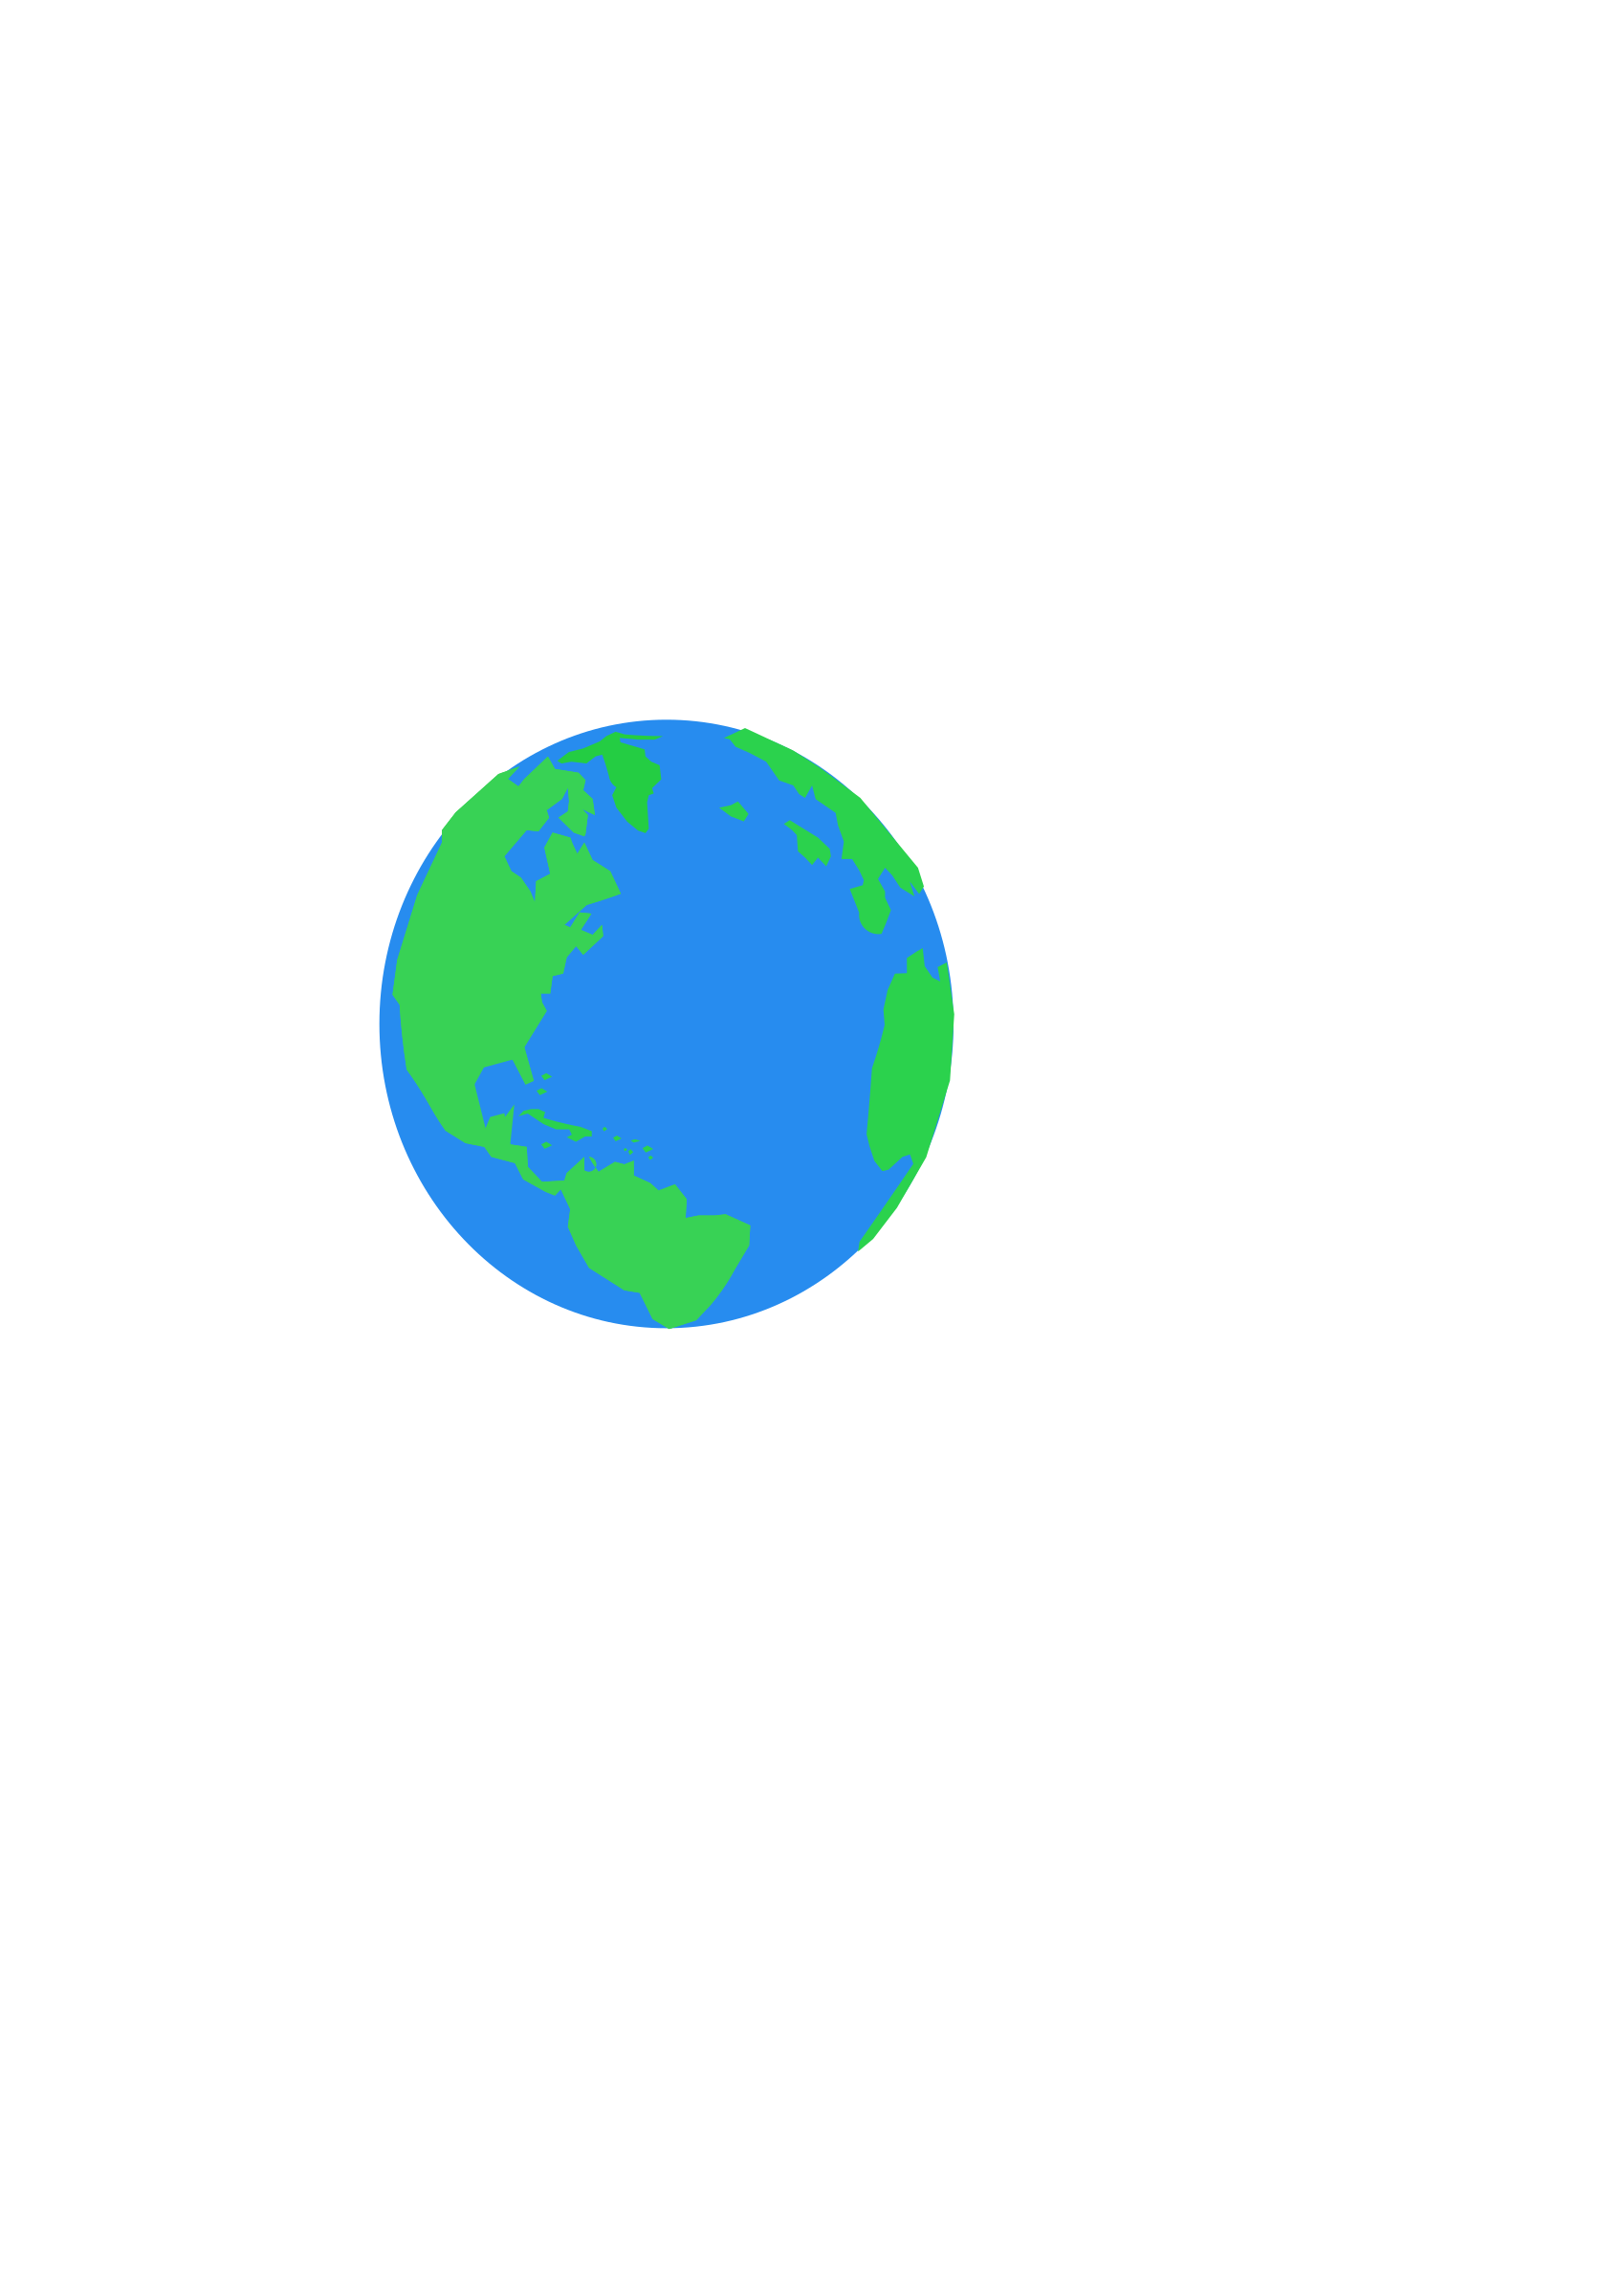 Planet clipart grey. Earth icons png free